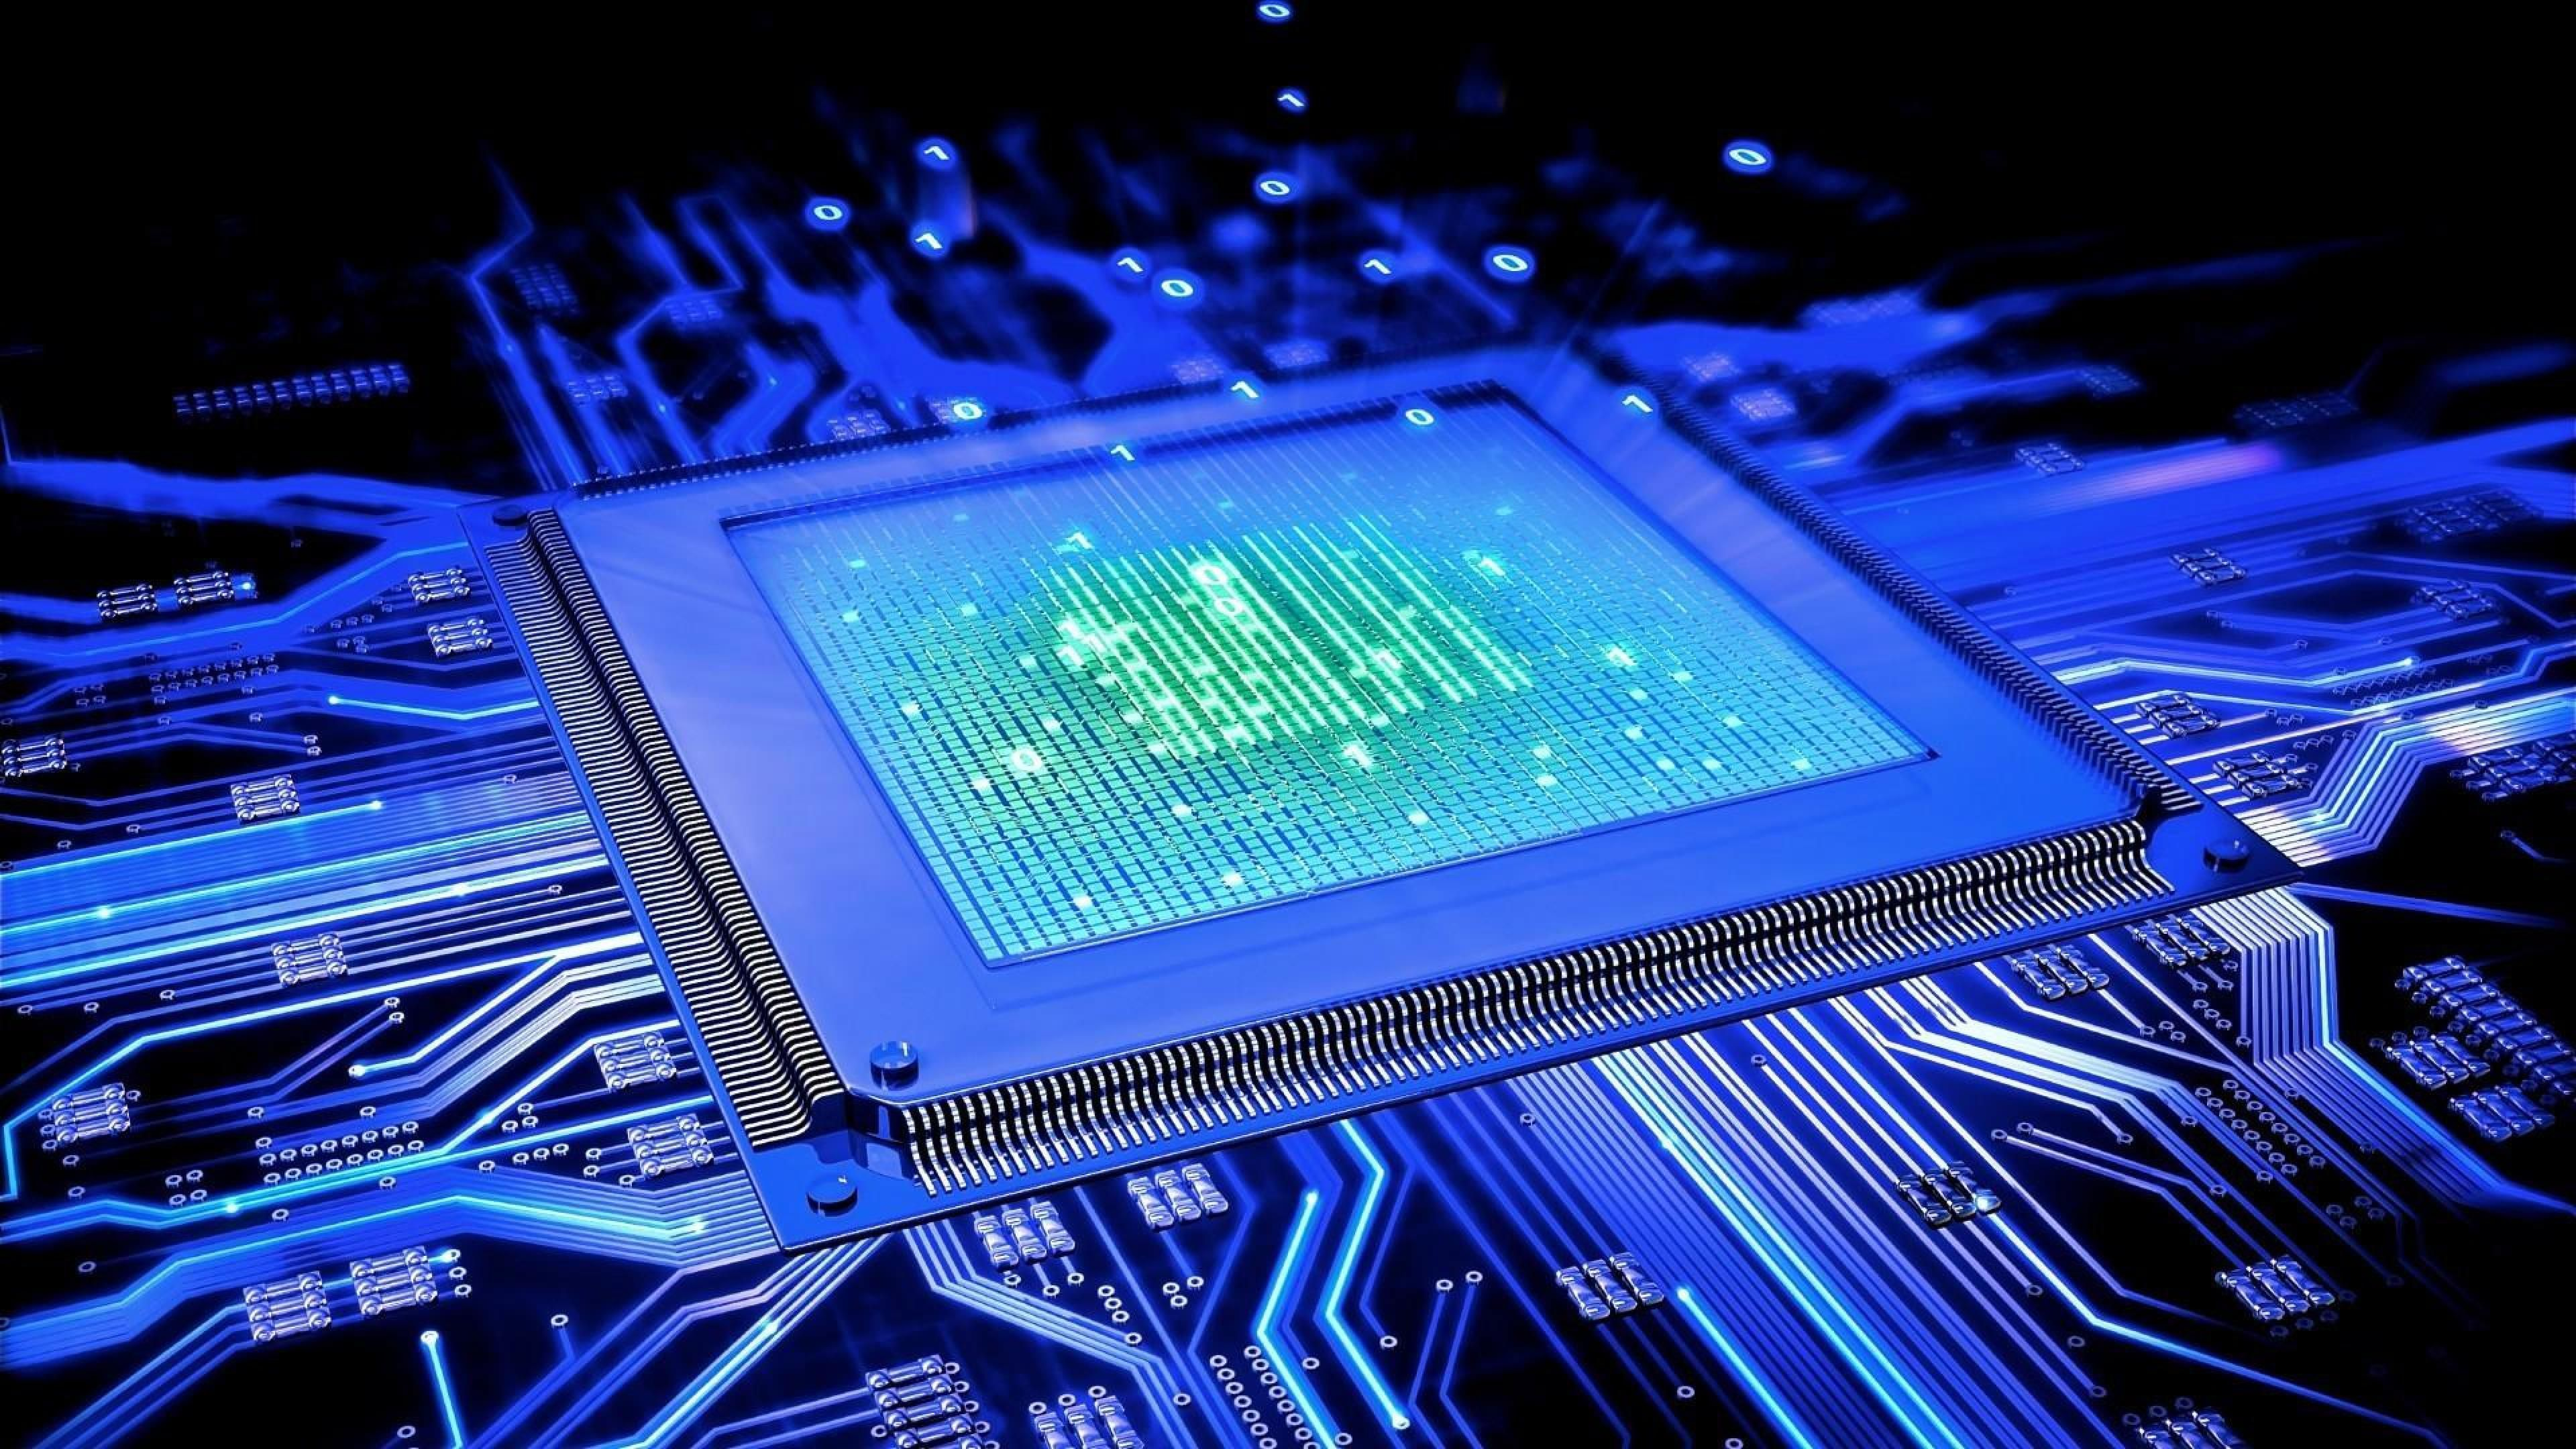 Technology Computer Circuit boards Glowing HD Wallpapers, Desktop ...